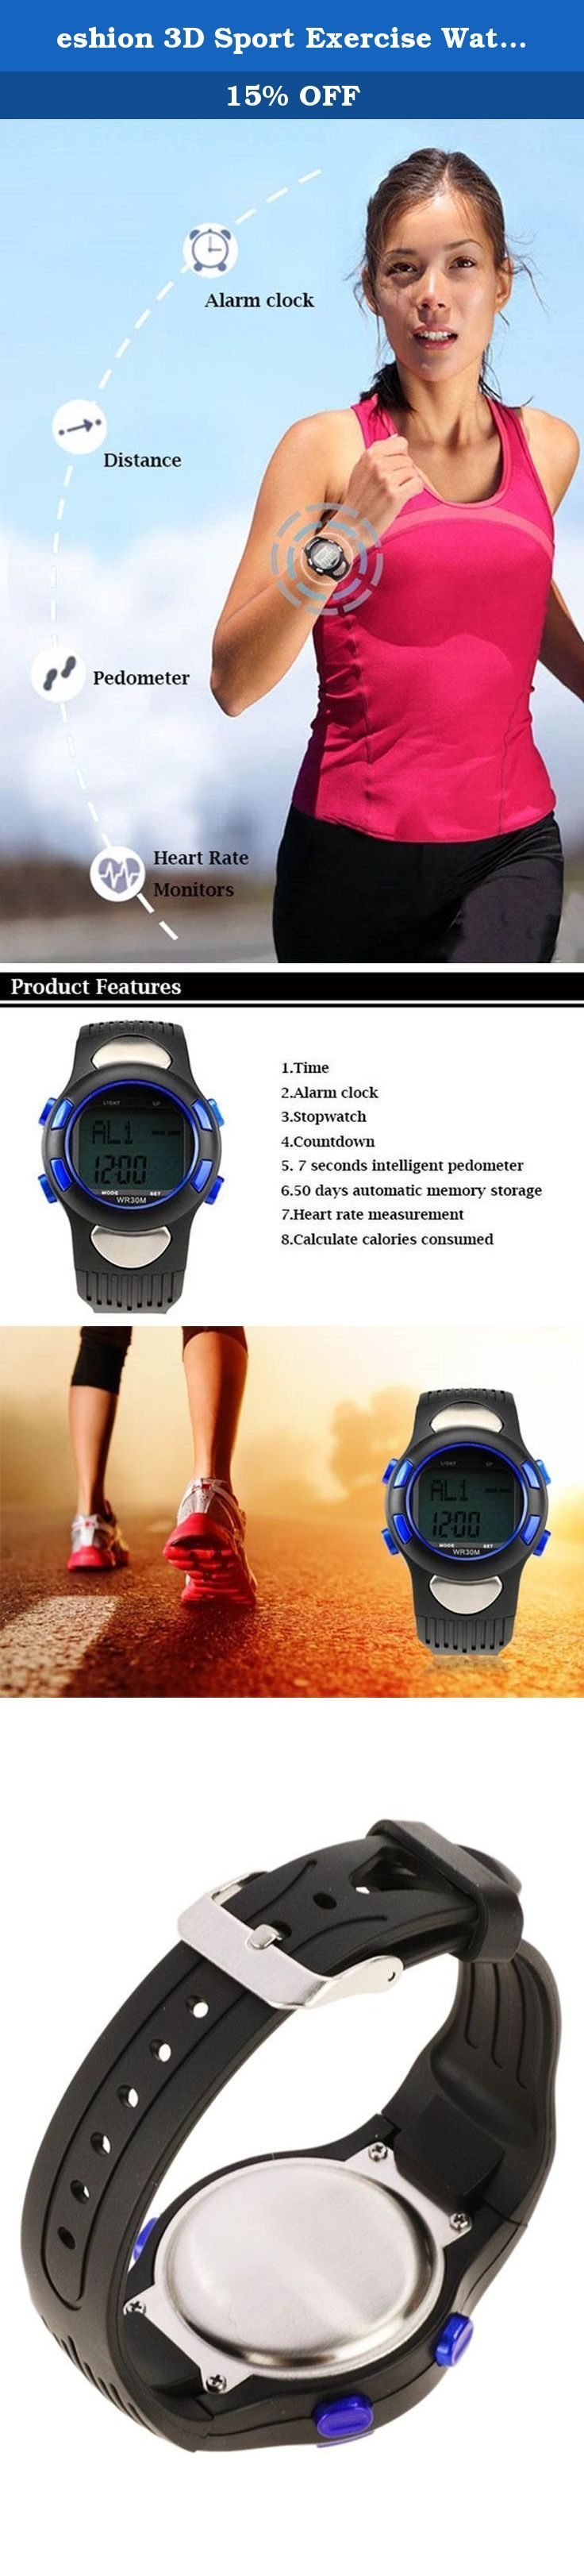 eshion 3D Sport Exercise Watch Pulse Heart Rate Monitor Pedometer Calories Counter. Features: Dial material: Tempered Glass Shell Material: Metal, Plastic Band material: Rubber Color: Blue Type: Sport watch Shape: Round Display: Digital Gender: Unisex Feature: Easy to operate Design: Multifunctional design Age group of application: Adult Backlight: EL or LED LCD display time and date Heart rate measuring range: 30 to 200 50 days automatic memory storage step function Modes: Time mode…